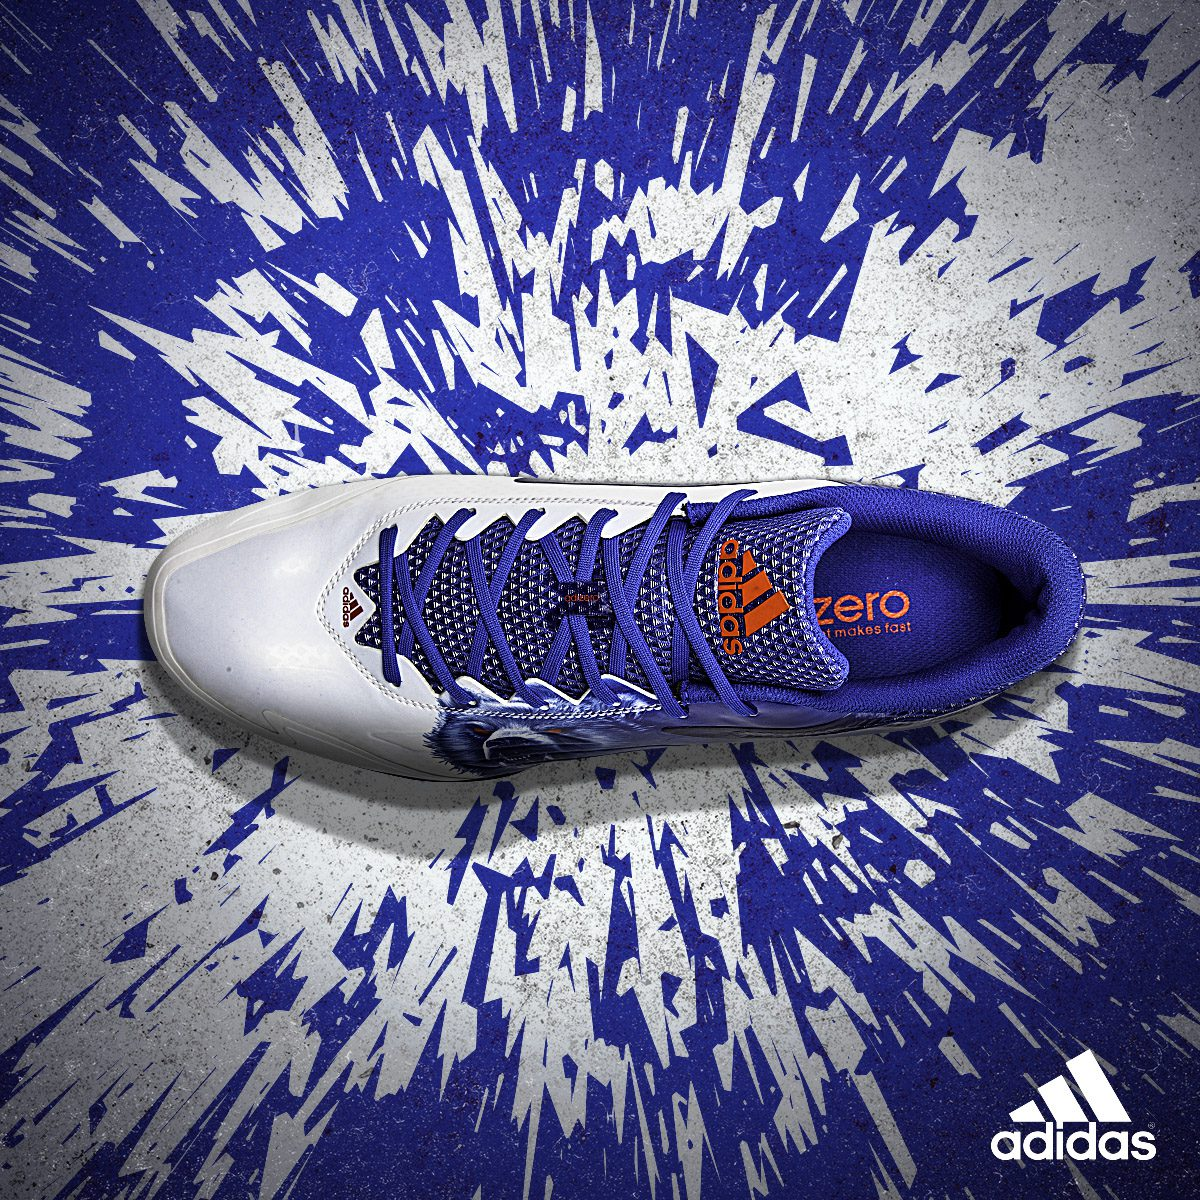 adidas_Baseball_Kris_Bryant_Uncaged_Bear_Top